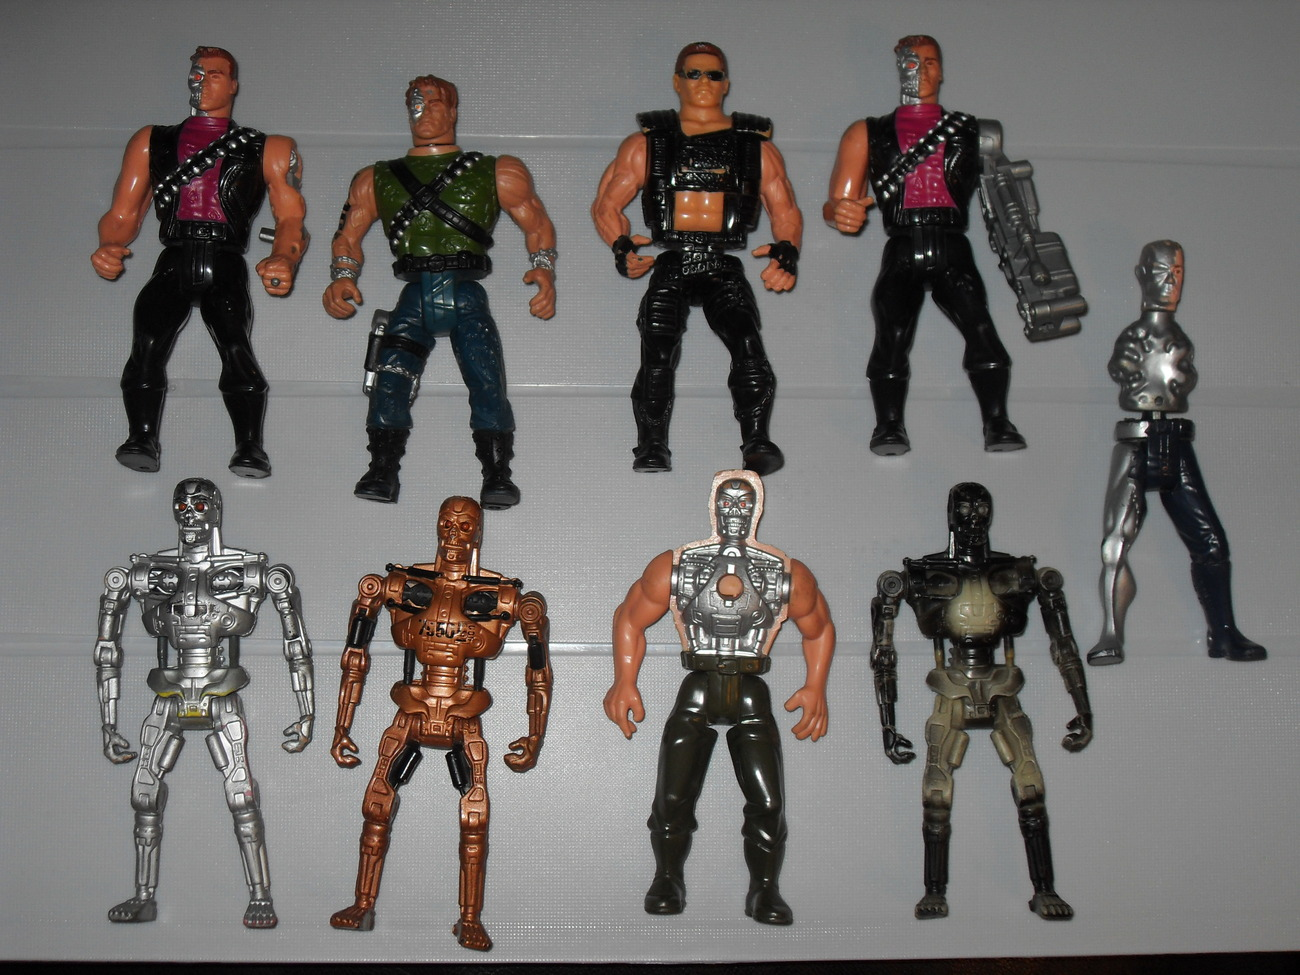 Vintage 1990s Terminator Lot of 9 Figures